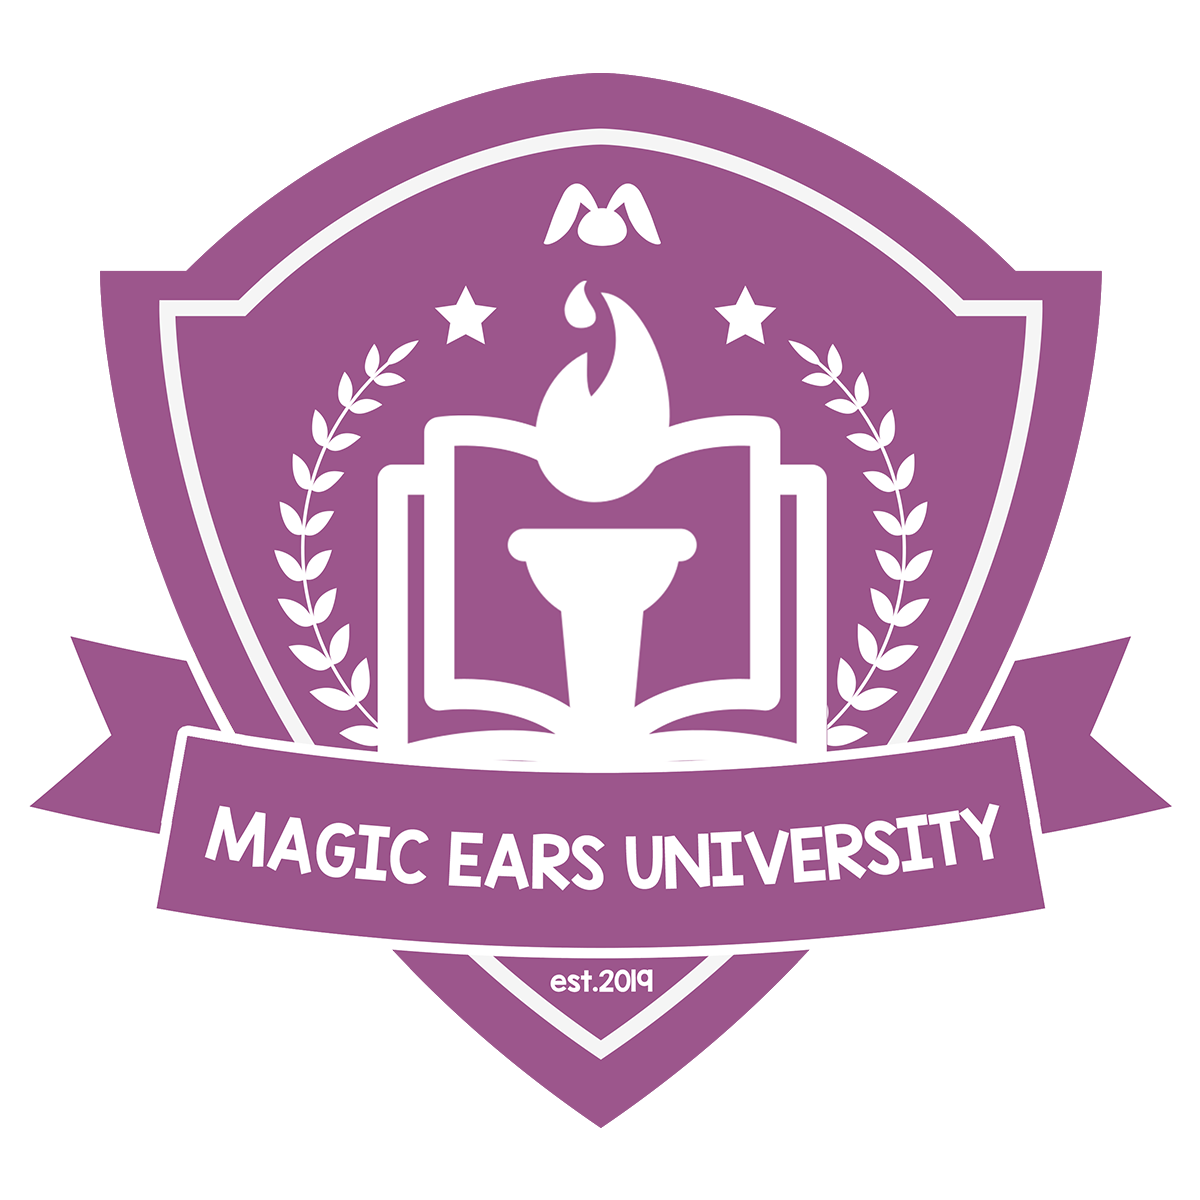 Magic Ears University logo crest